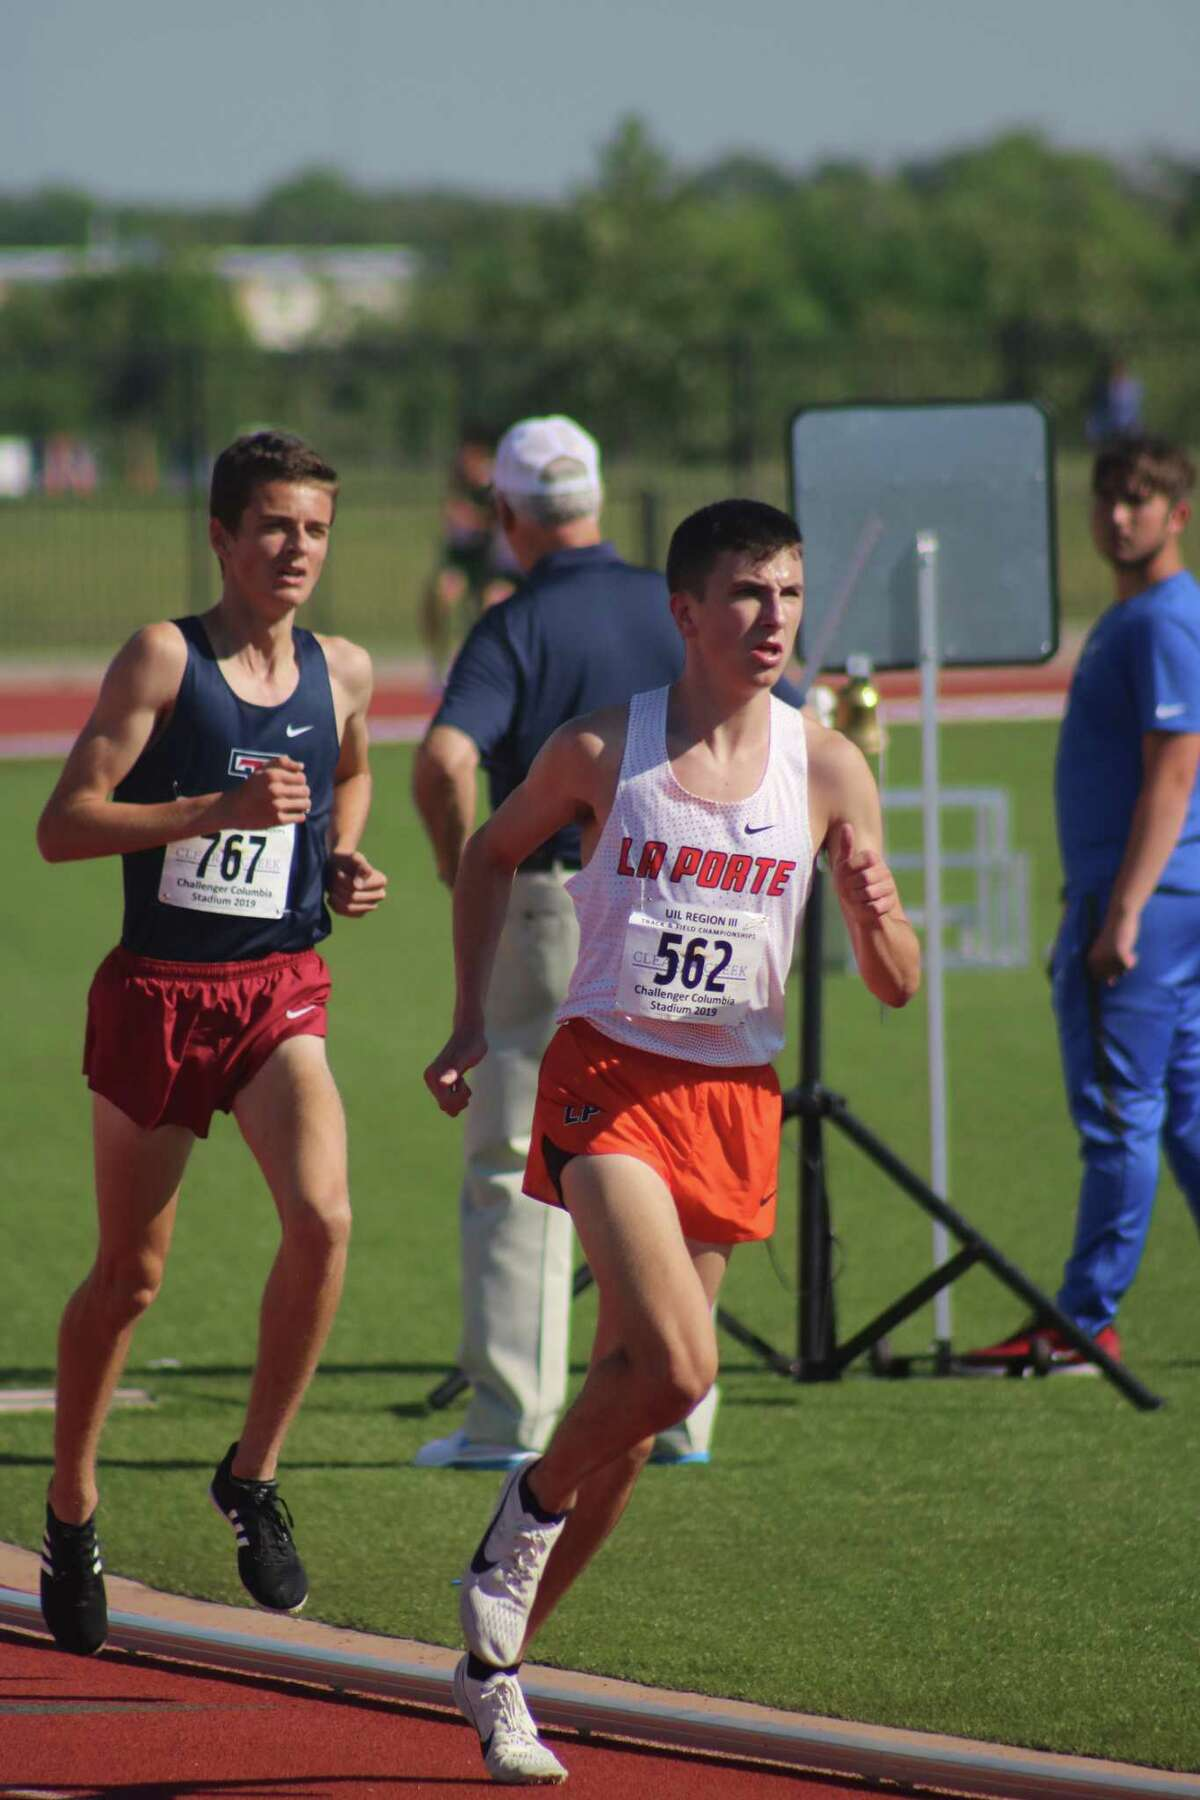 La Porte's Ryan Schoppe stays a step ahead of Katy Tompkins' Cole Lindhorst during the Region III 3200-meter run at Challenger Columbia Stadium. The one-time Fairmont Junior High student set a PR when he was clocked at 9:03.86. Both will be in the state championship race.